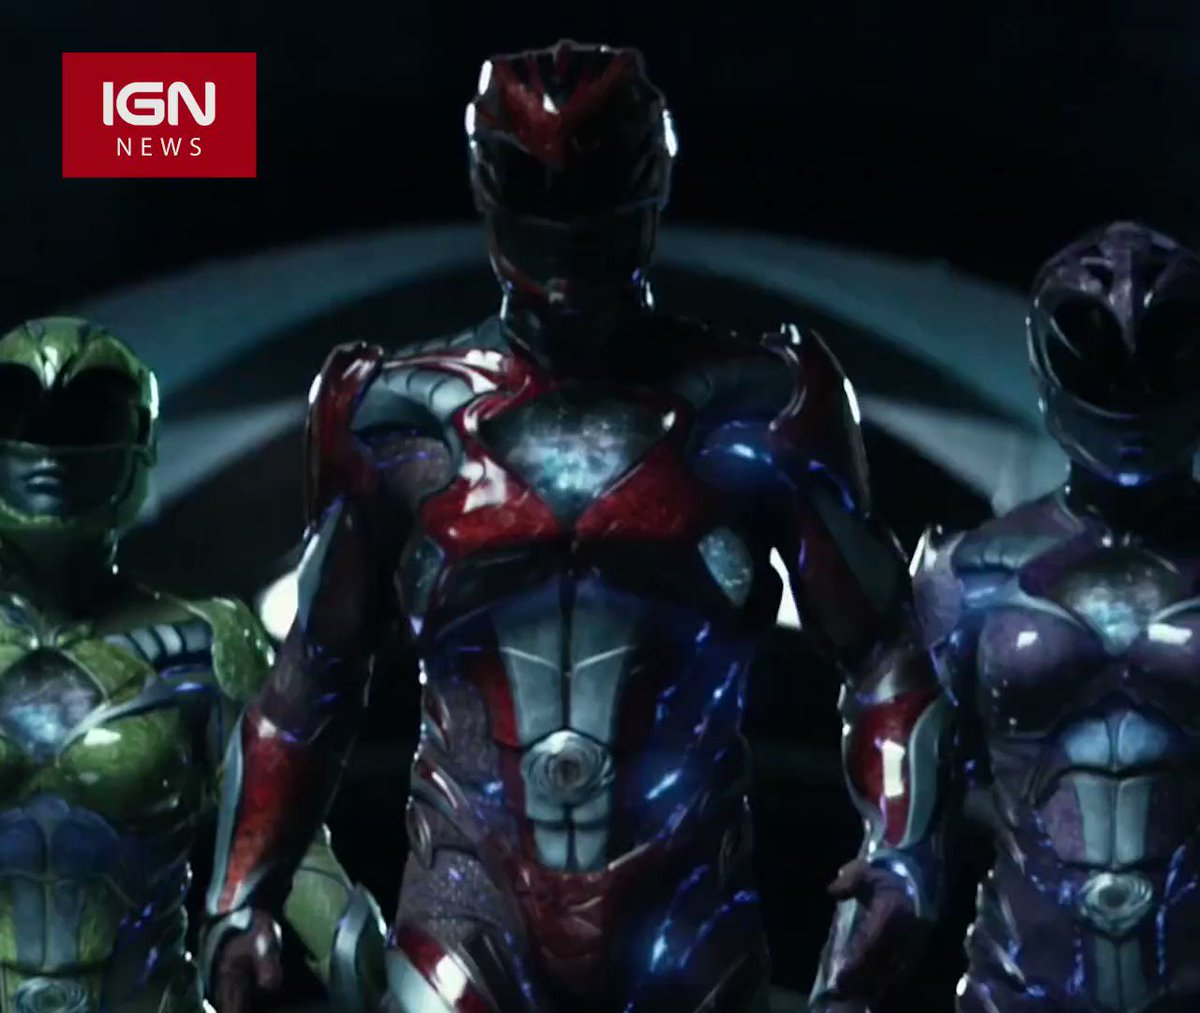 Lionsgate's live-action Power Rangers Movie will serve as the first in a six-film story.